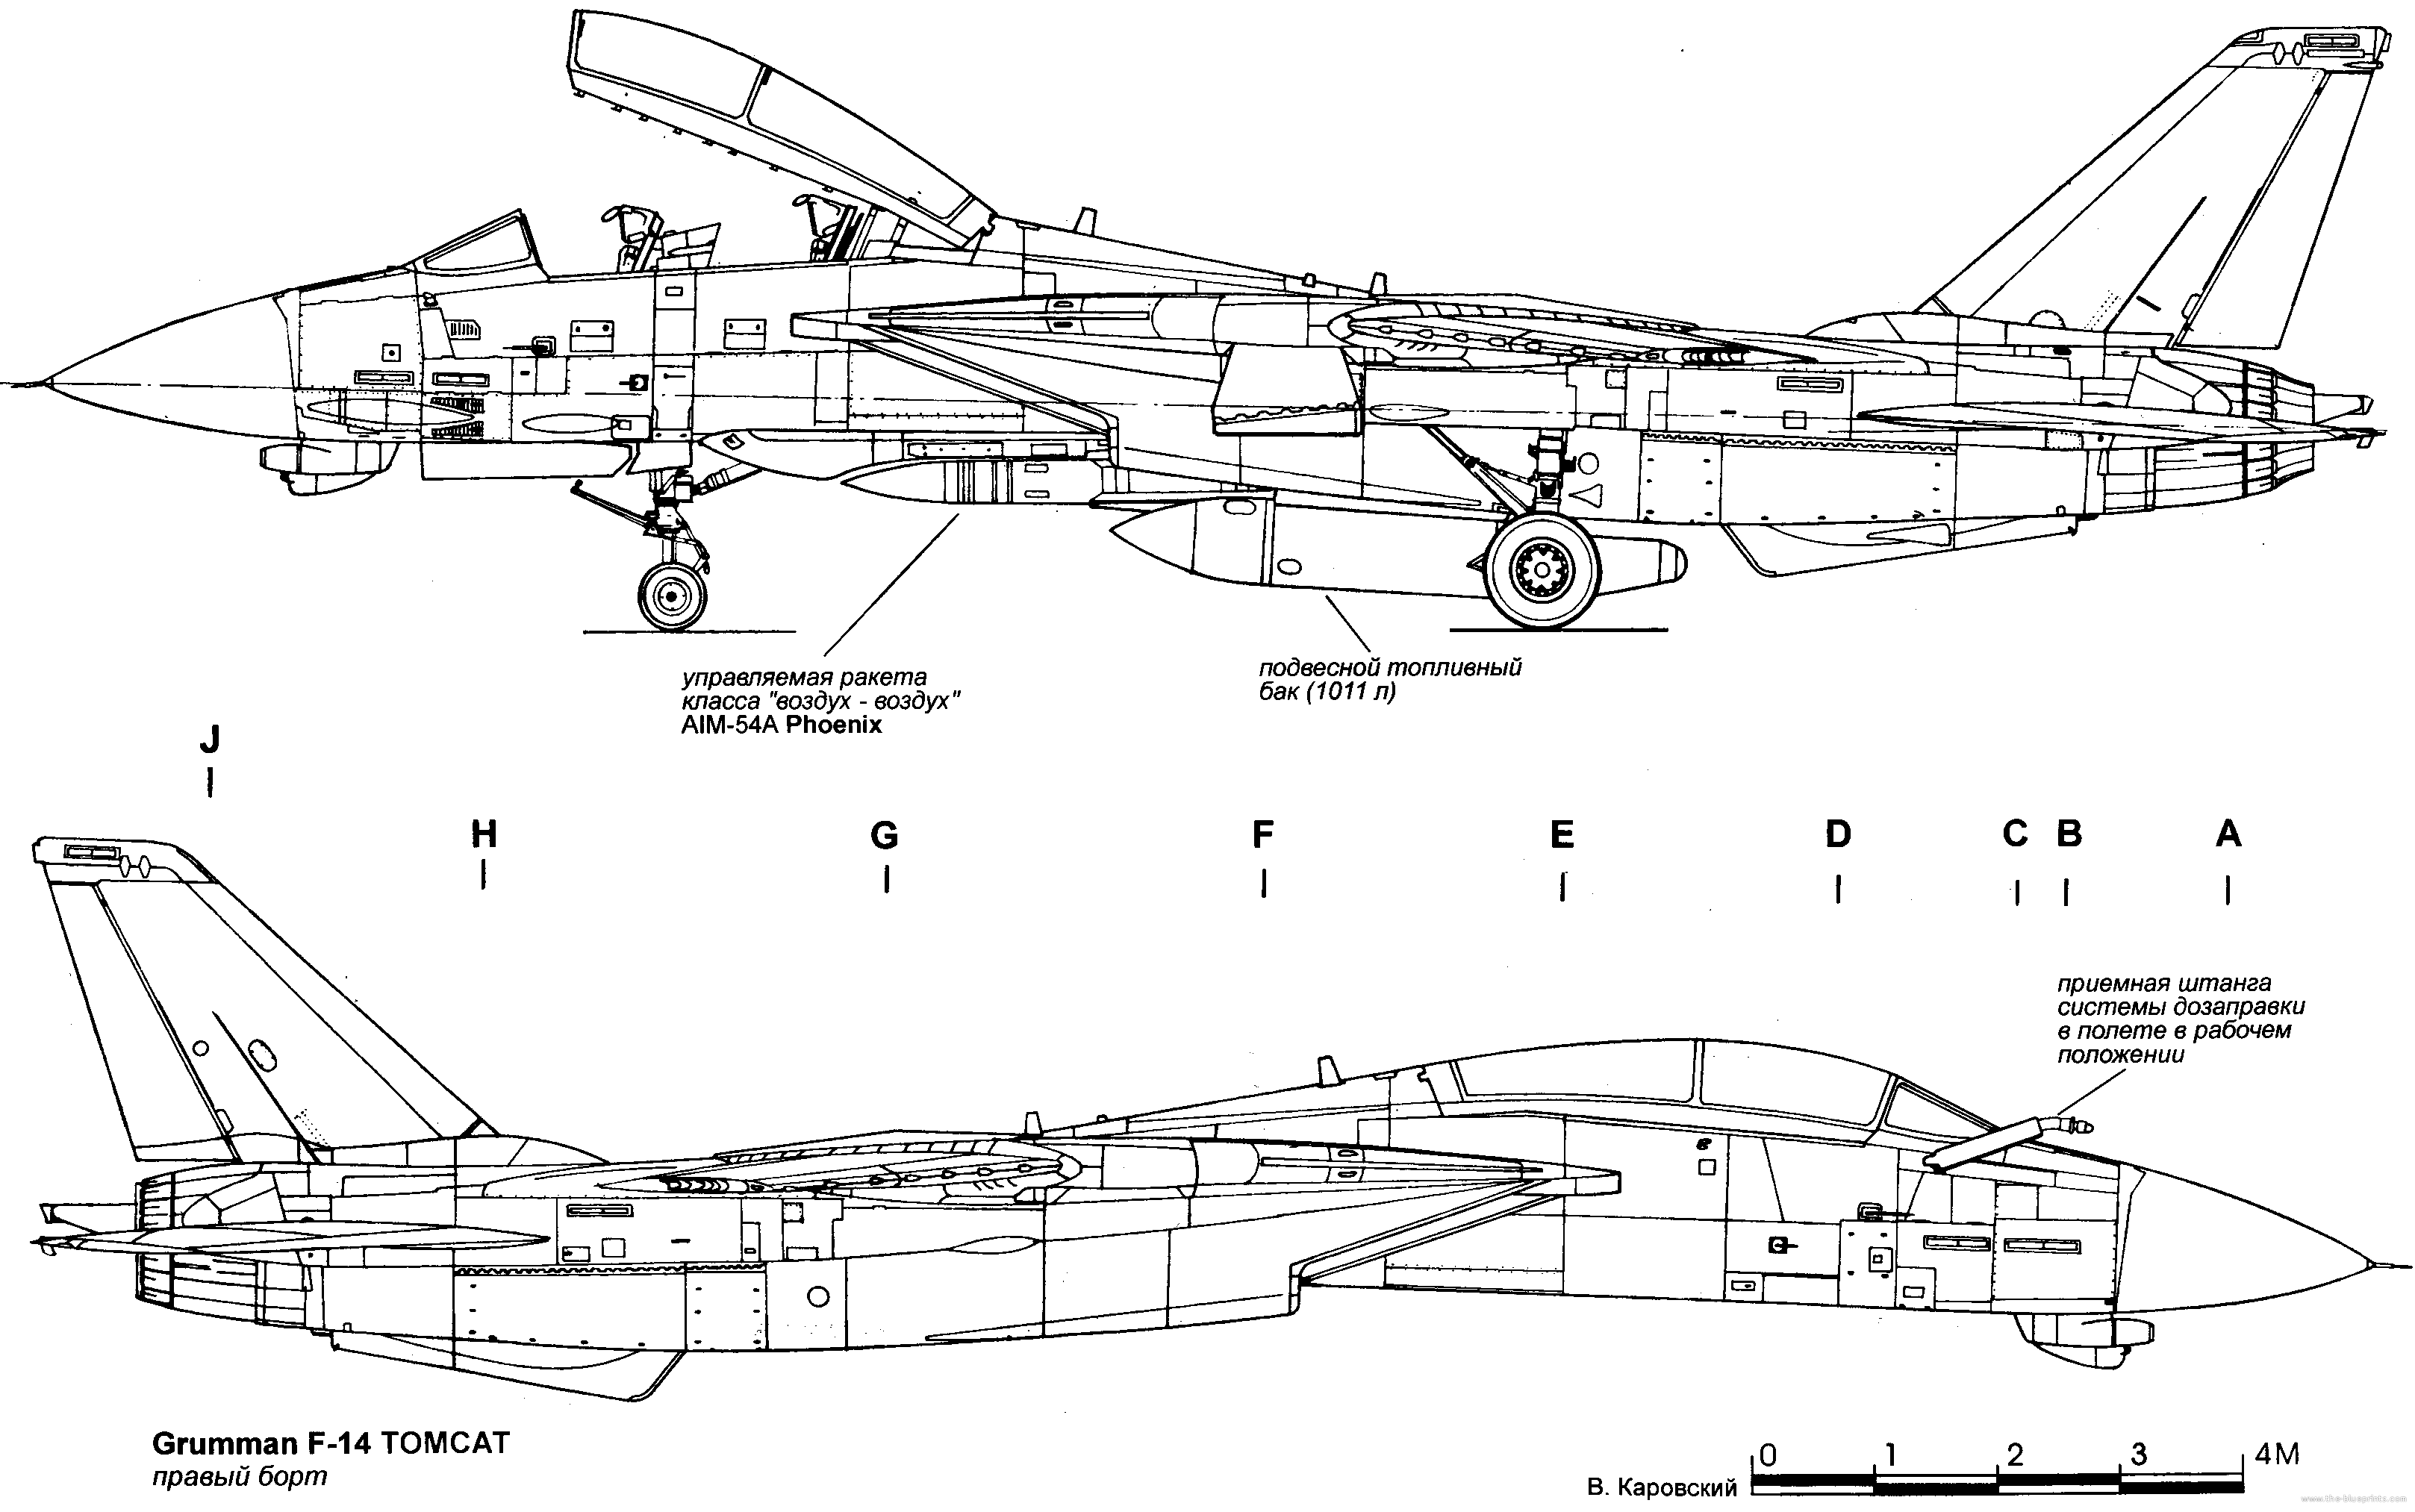 f14 blueprints - Google Search   Ships   Airplane, Aircraft design